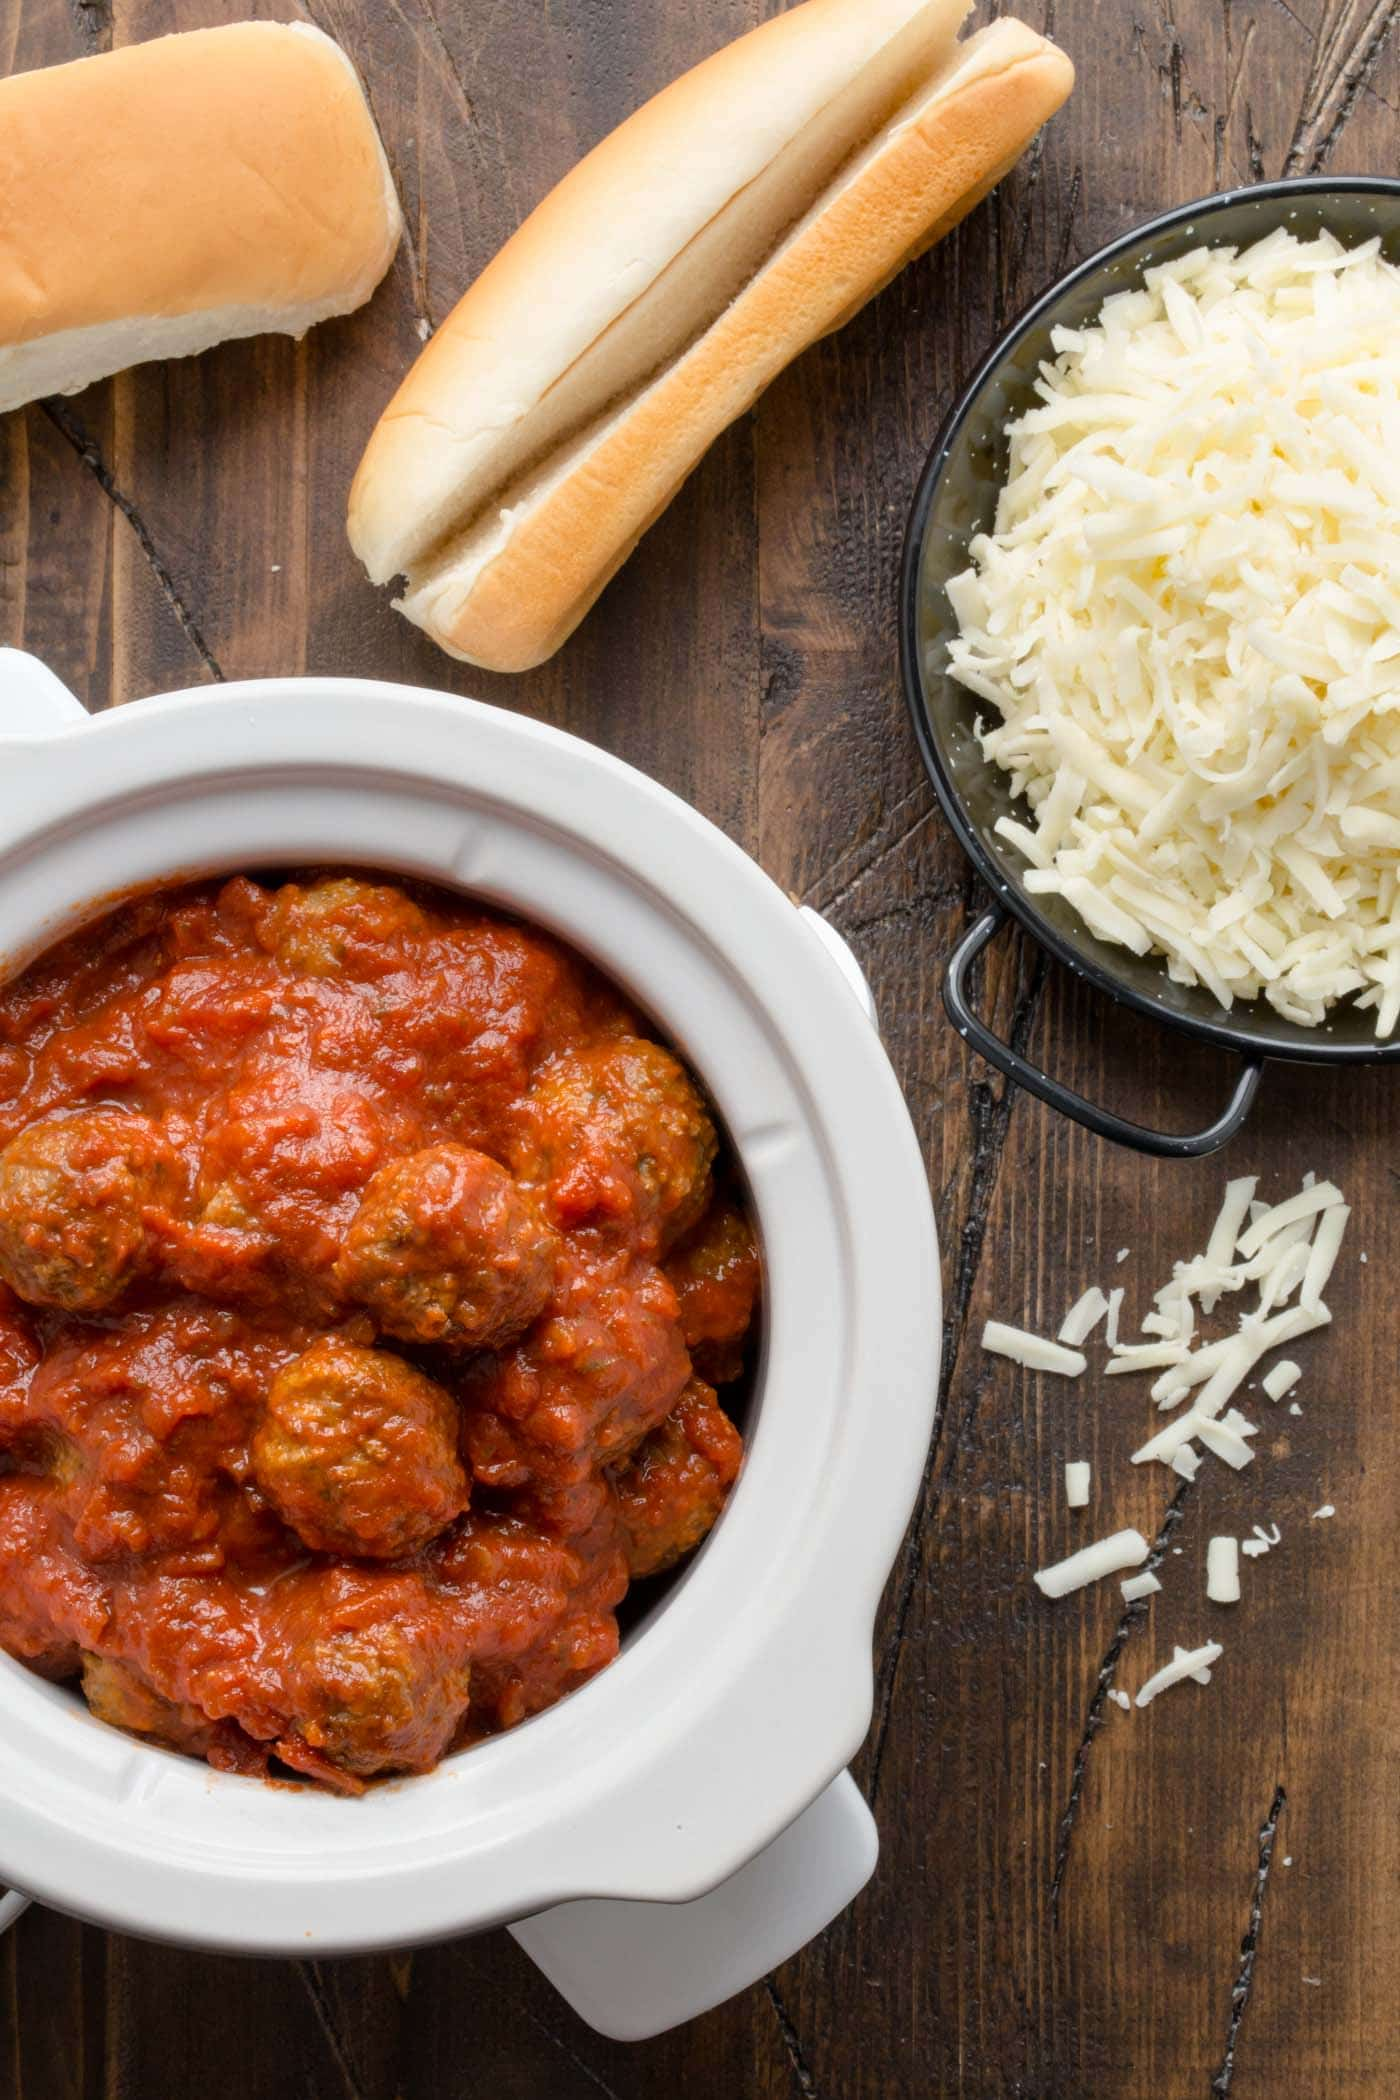 Slow Cooker with meatballs and fresh shredded mozzarella with buns.